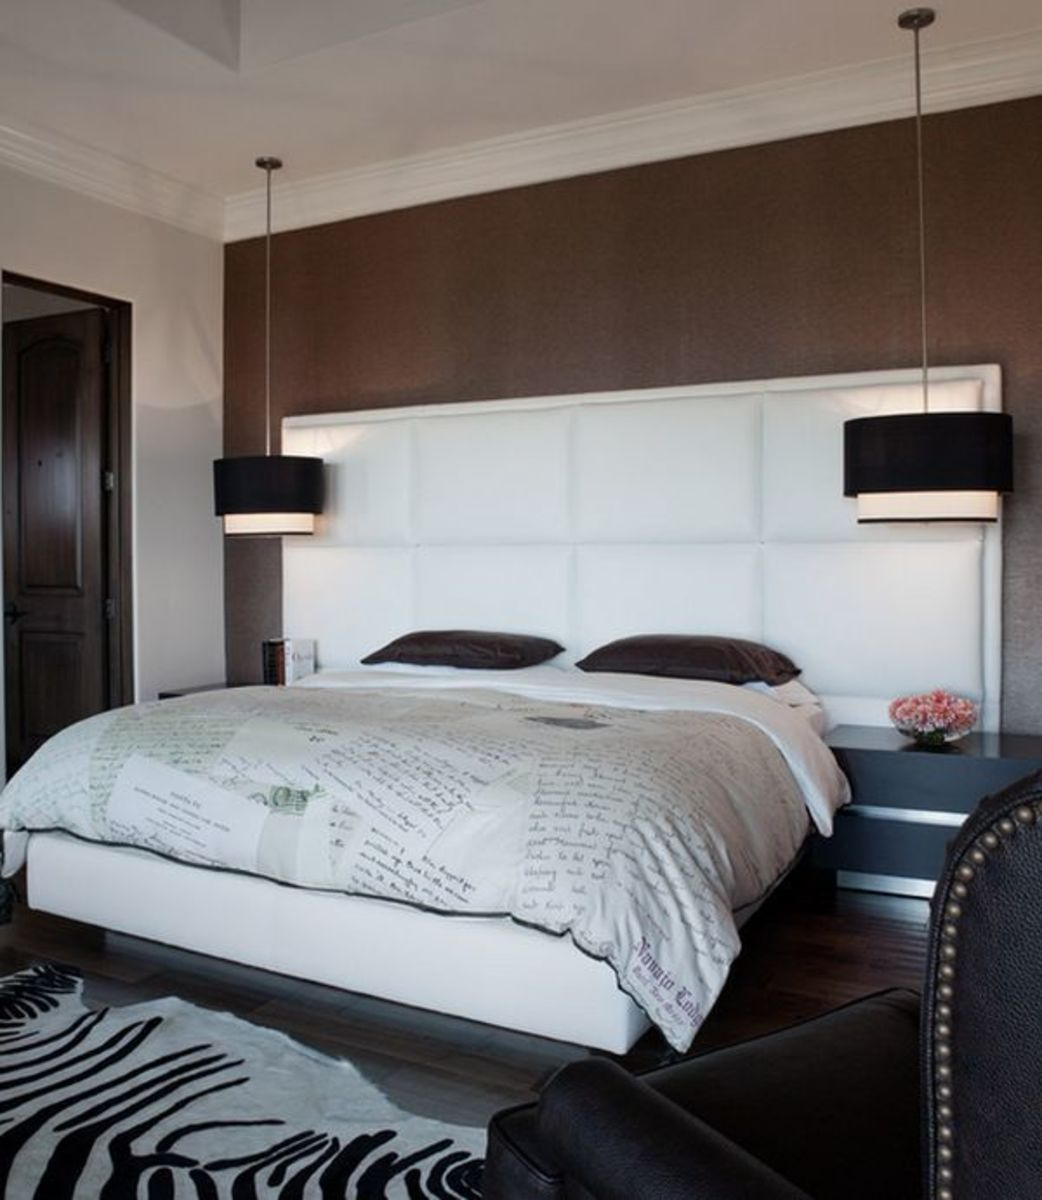 Drum pendants give off plenty of light for reading and allows more room on nightstands.